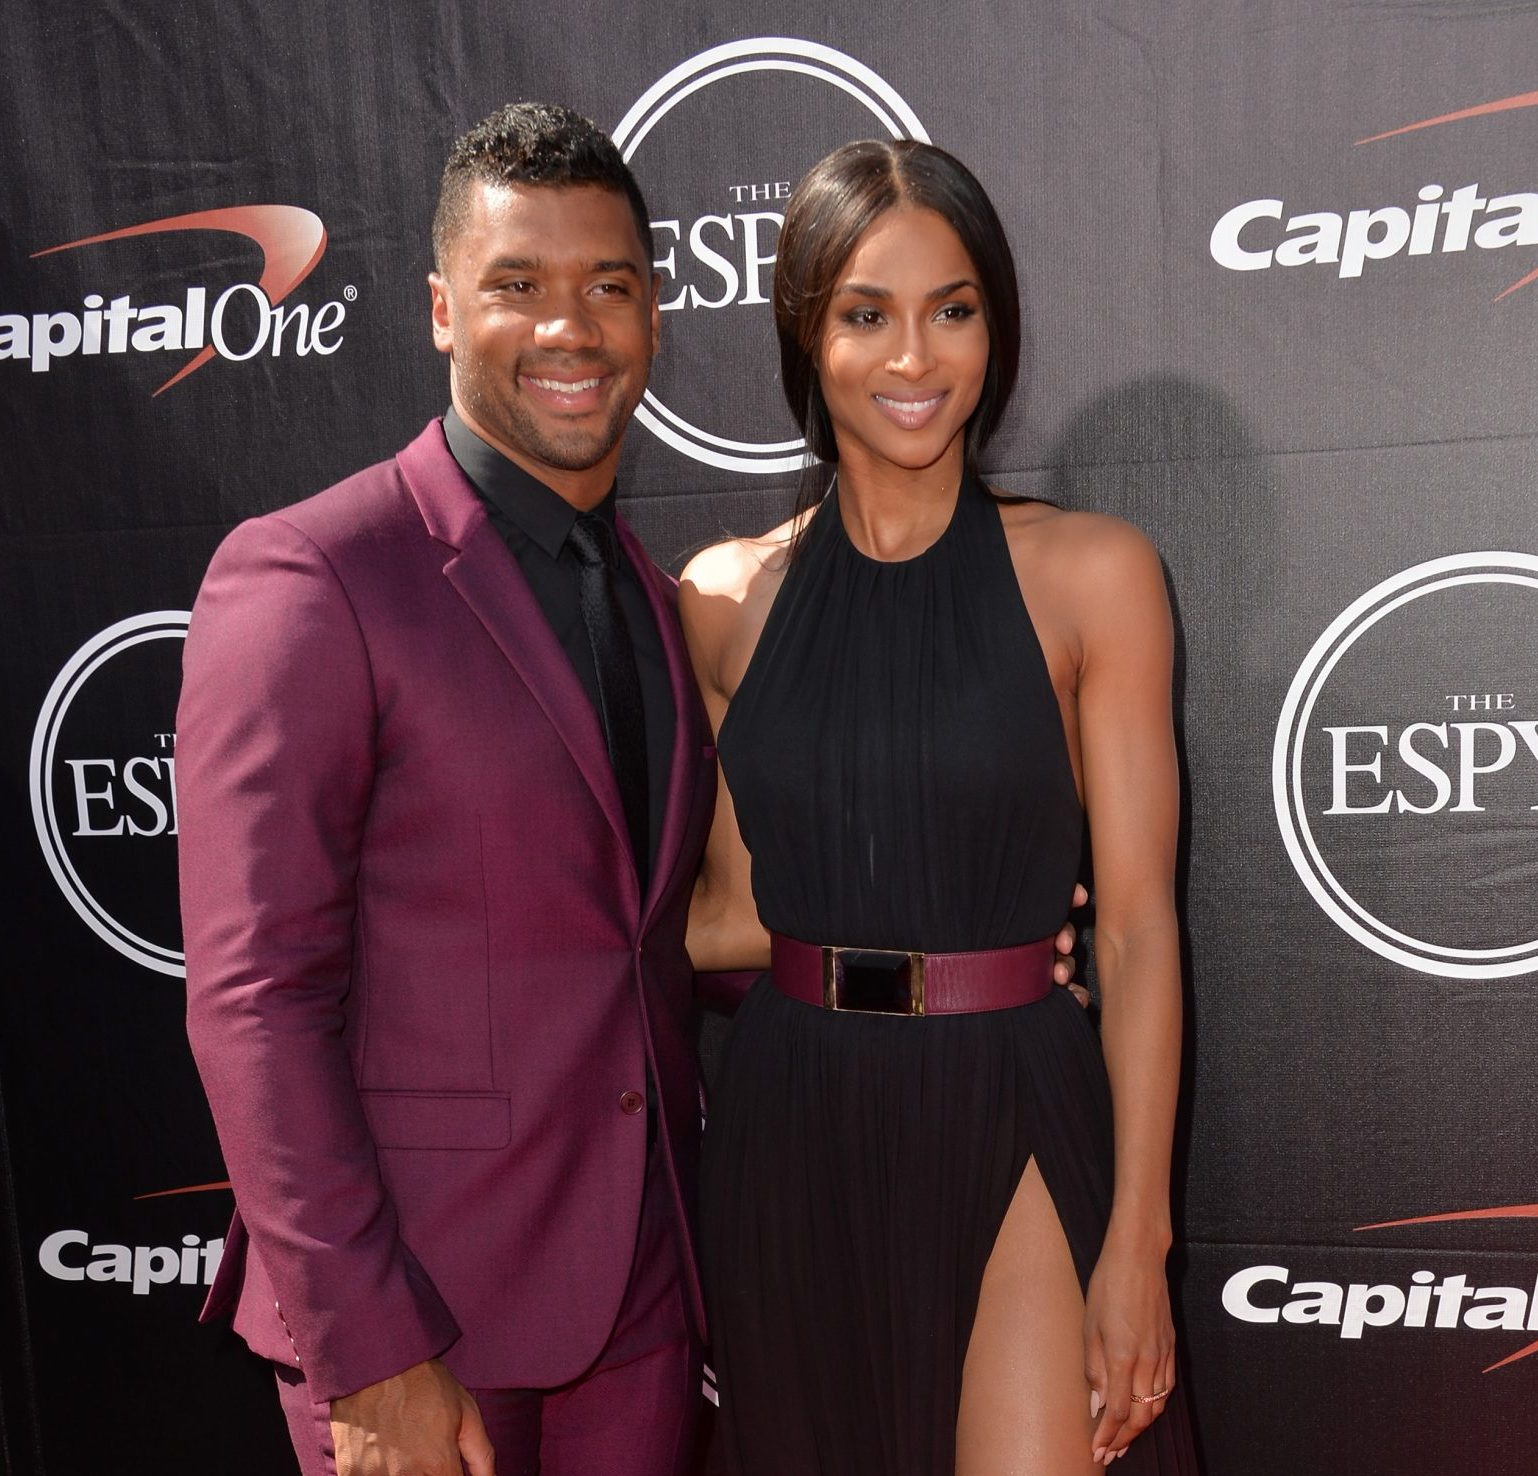 Russell Wilson and Ciara (Photo: Featureflash Photo Agency/Shutterstock.com)